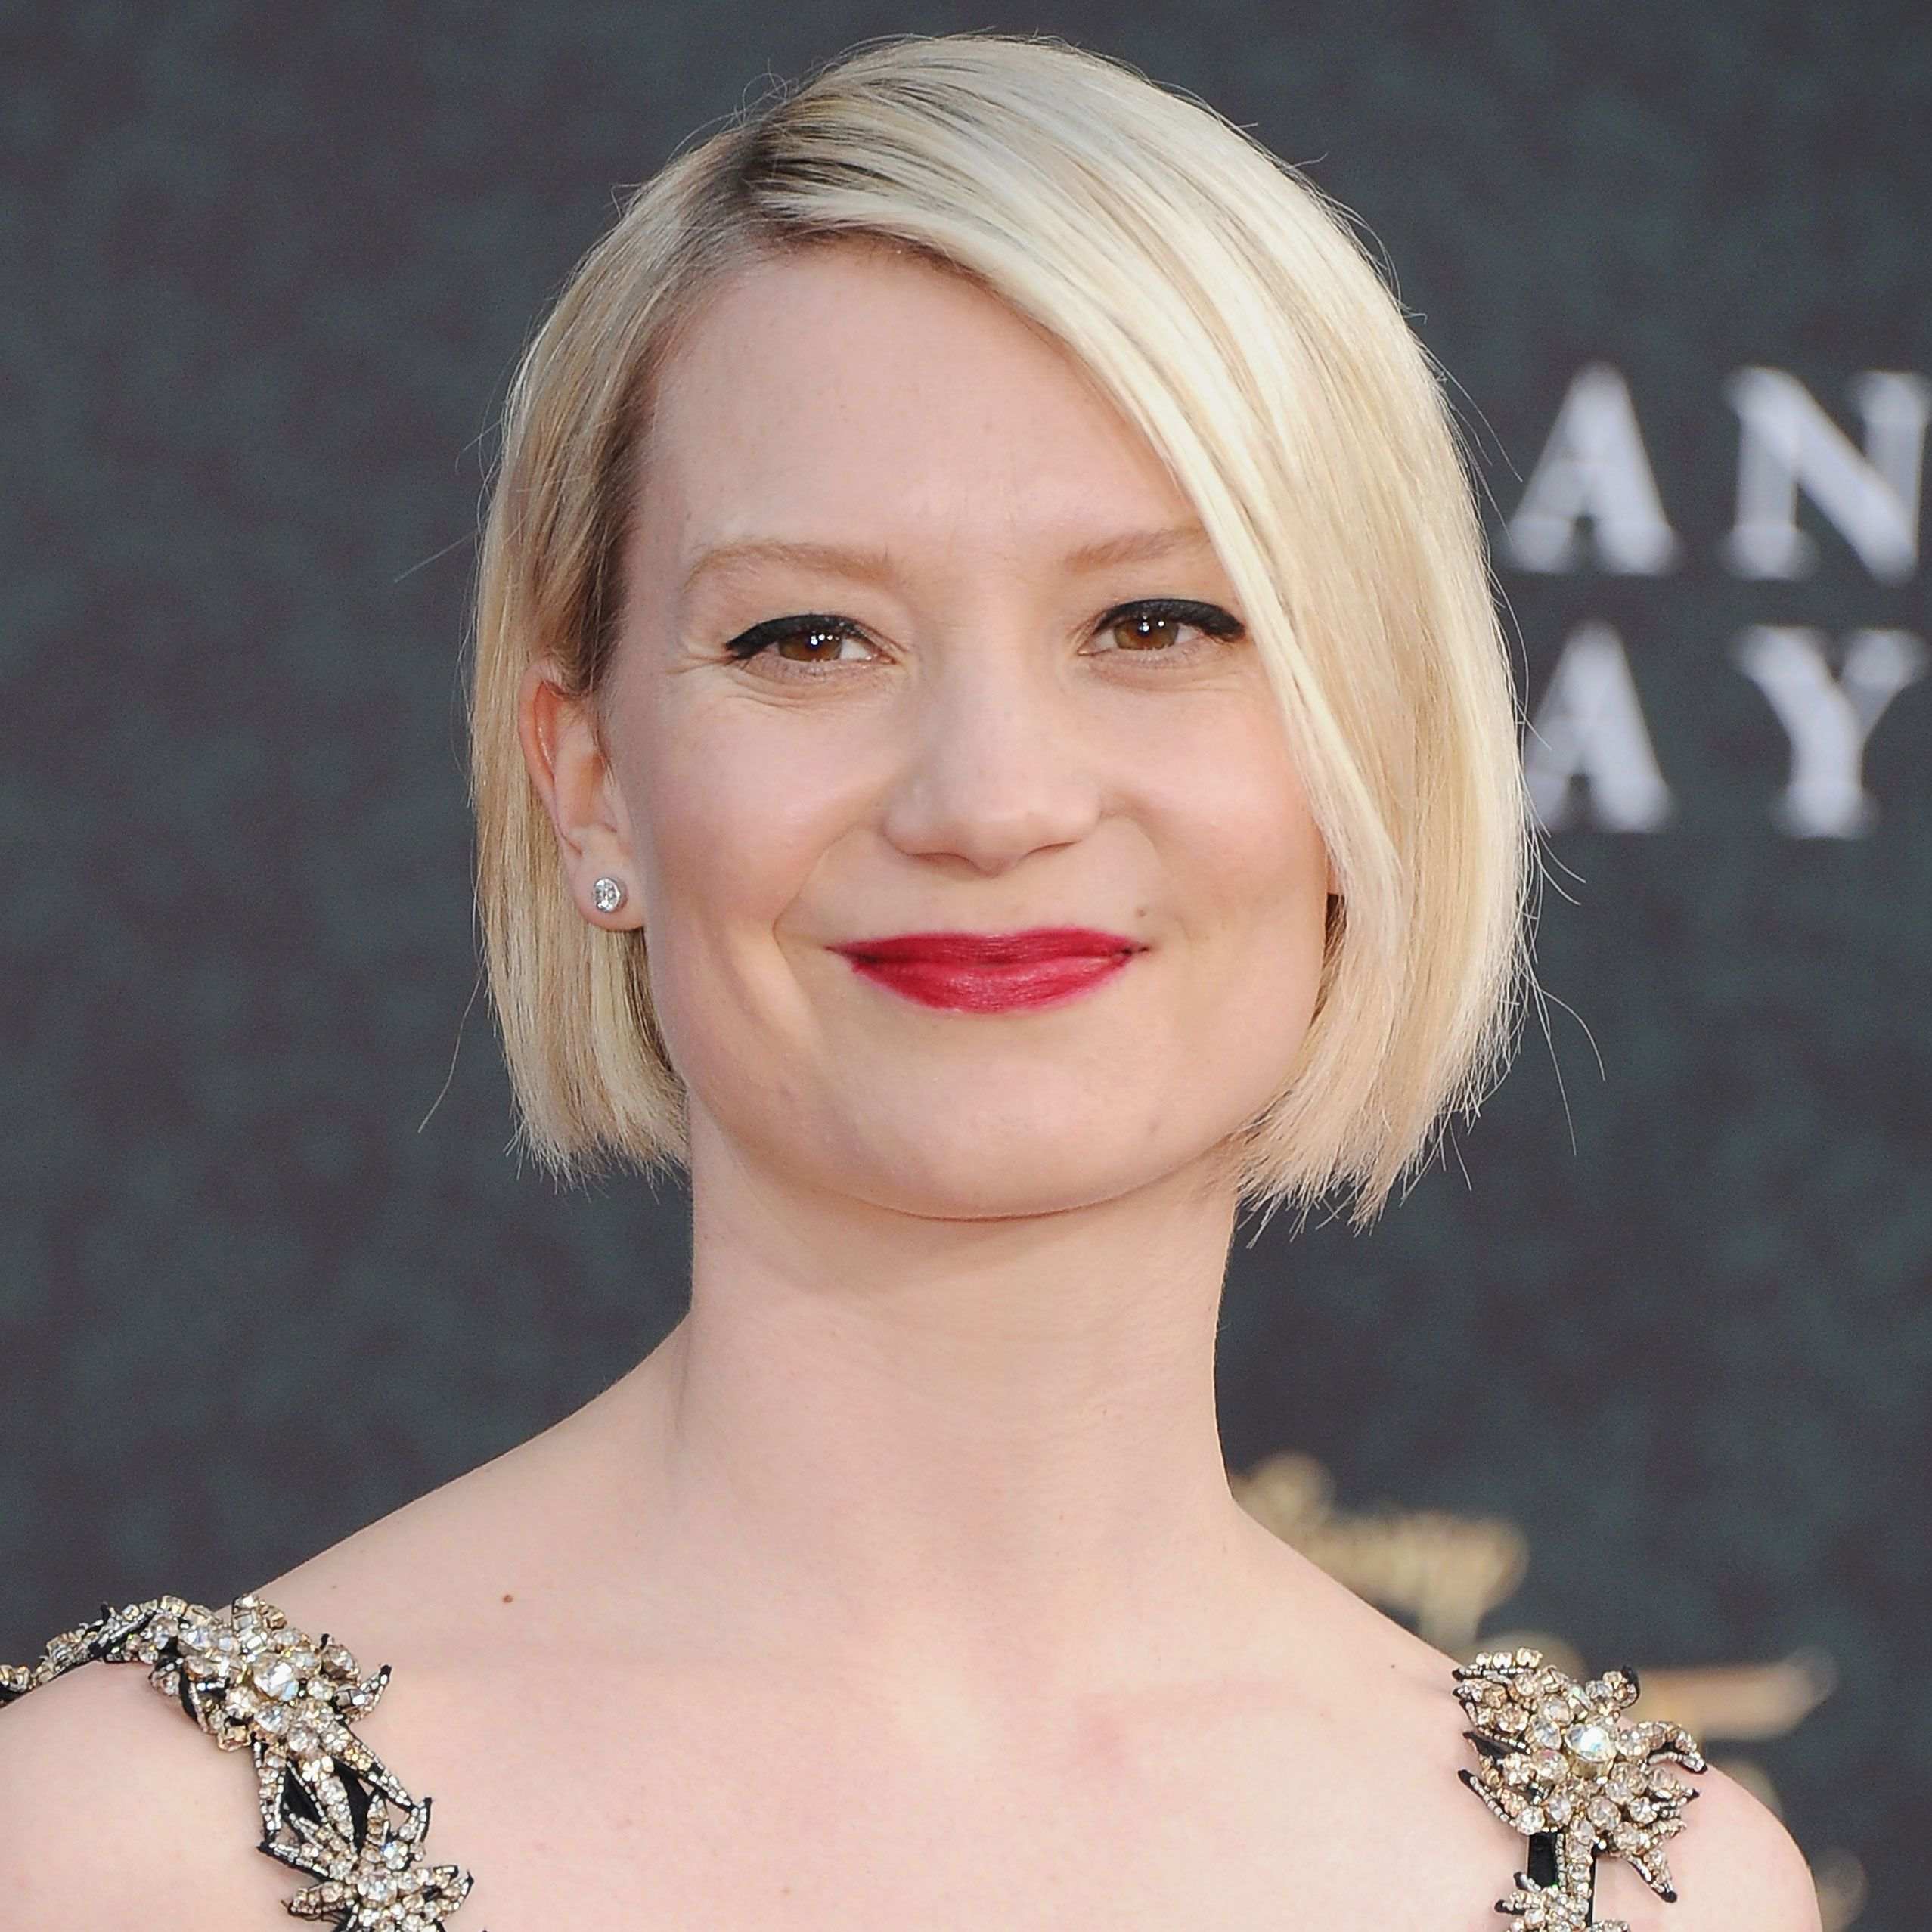 80 Cute Short Hairstylesand How To Pull Them Off Mia Wasikowska